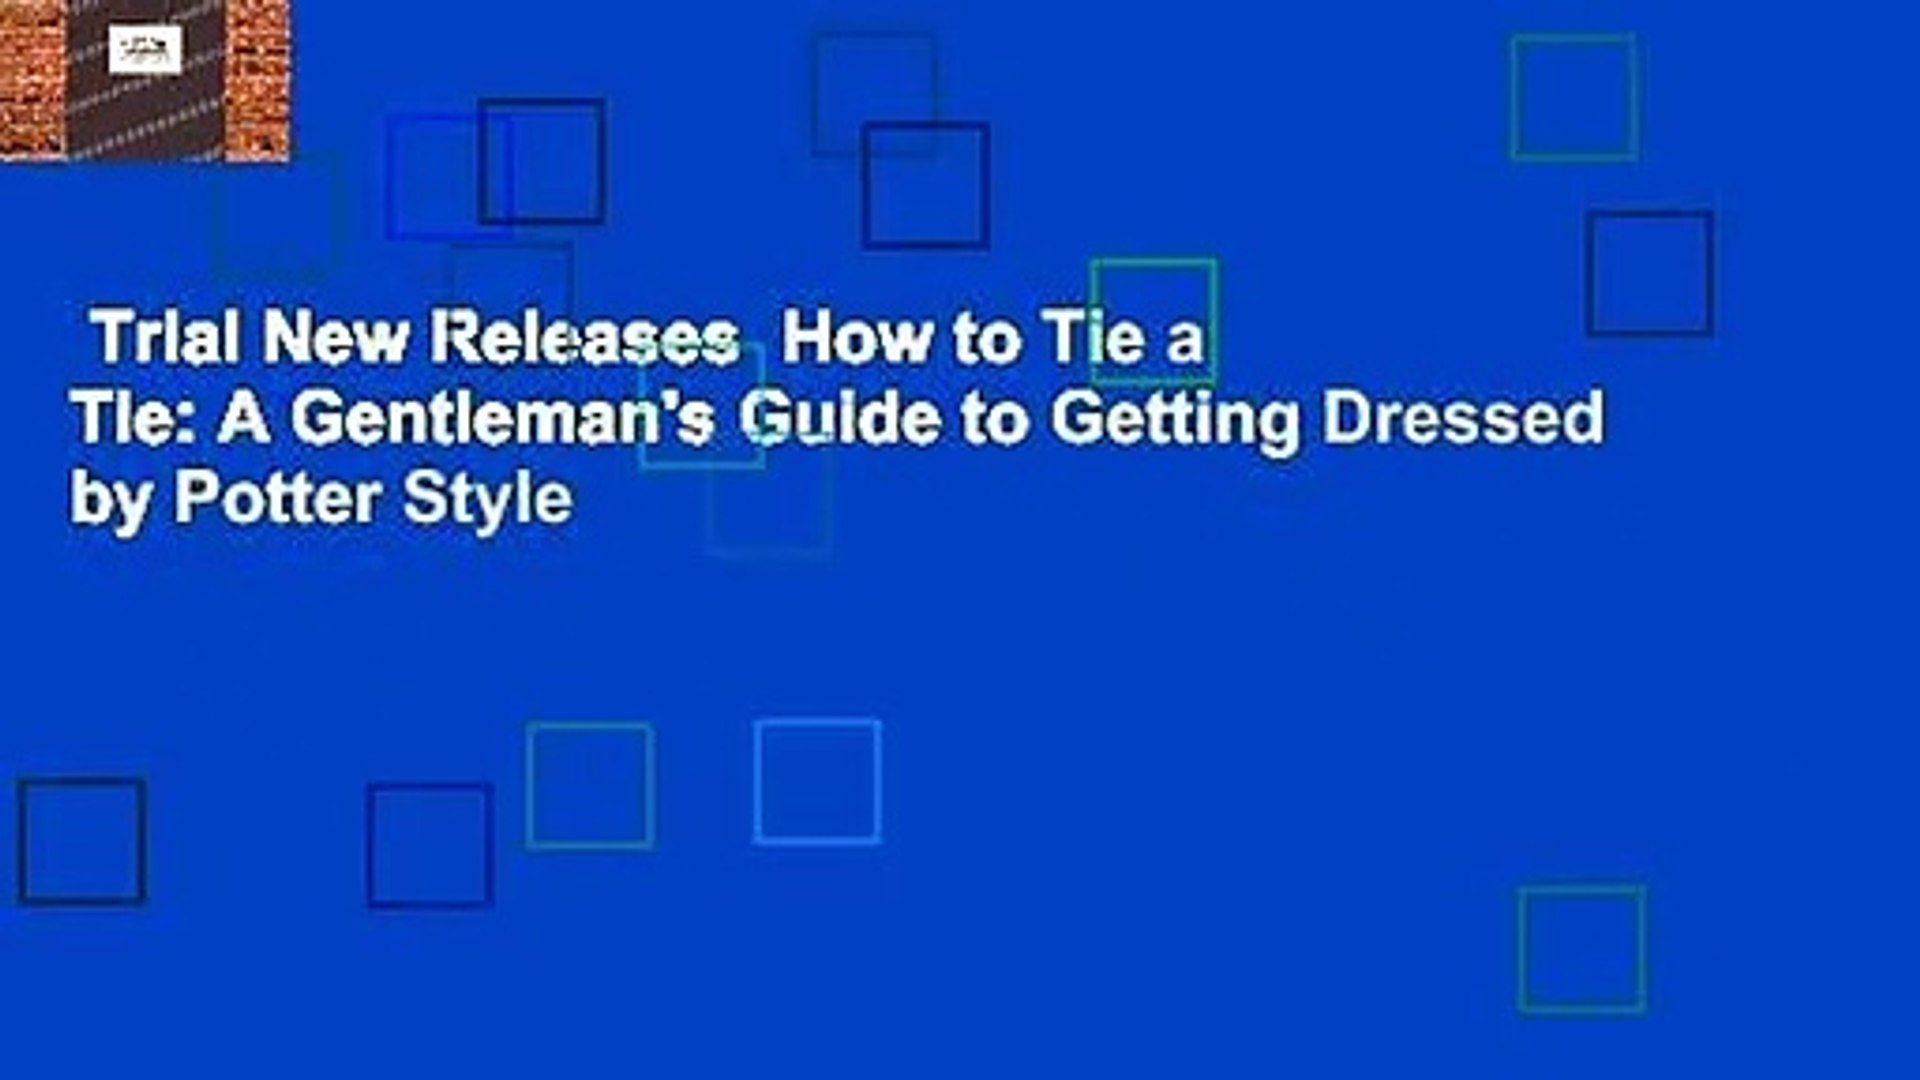 Trial New Releases  How to Tie a Tie: A Gentleman's Guide to Getting Dressed by Potter Style